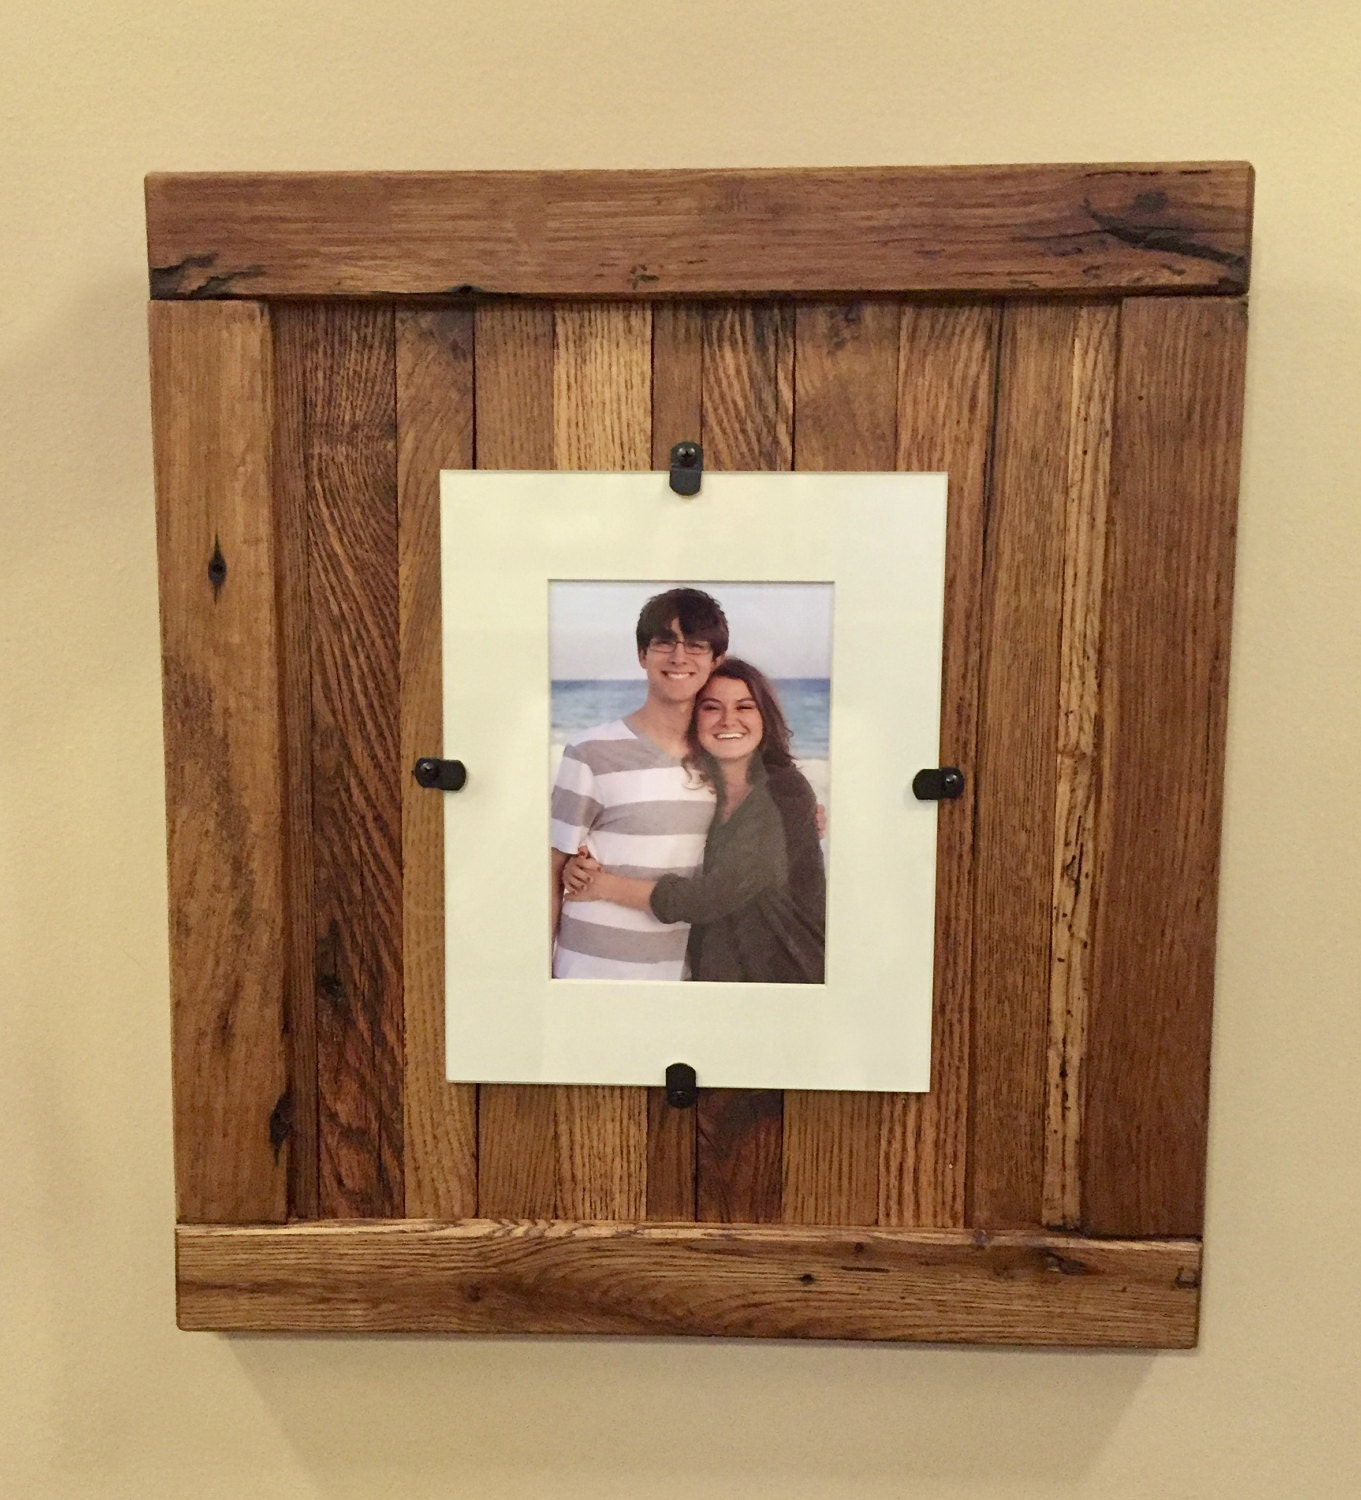 reclaimed wood frames large wood frames set of 3 8 x 10 picture frame with mat 11 x 14 picture frame without mat free shipping - Wood For Picture Frames